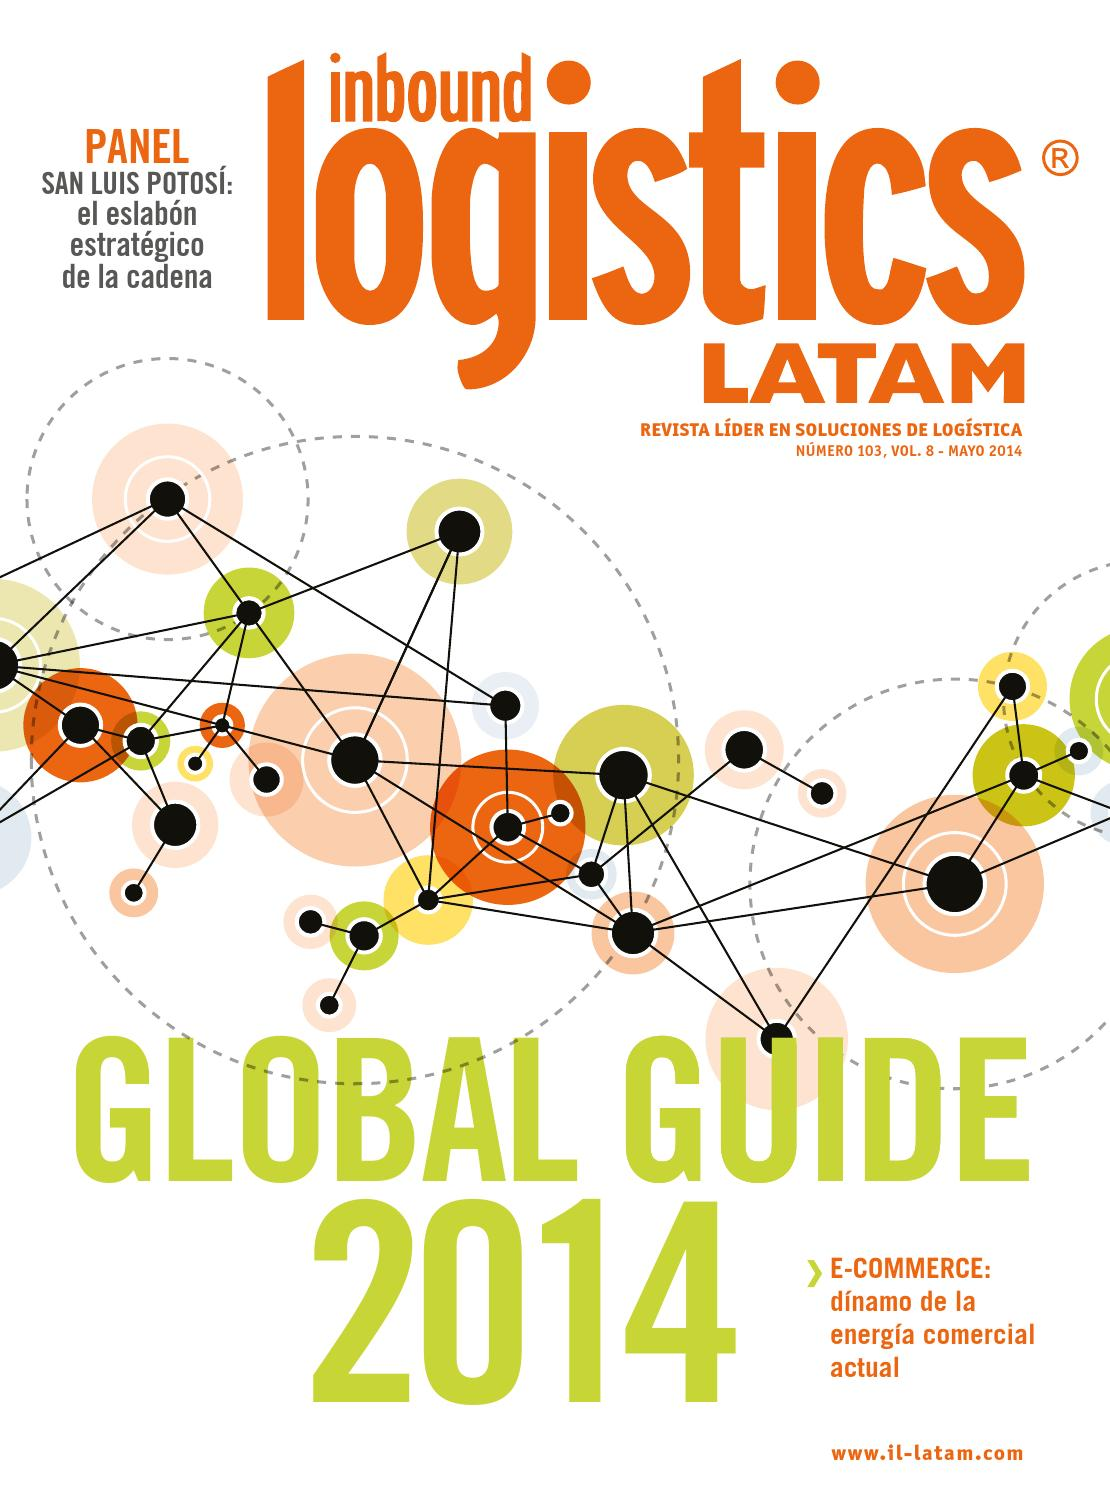 Ill103 by Inbound Logistics Latam - issuu